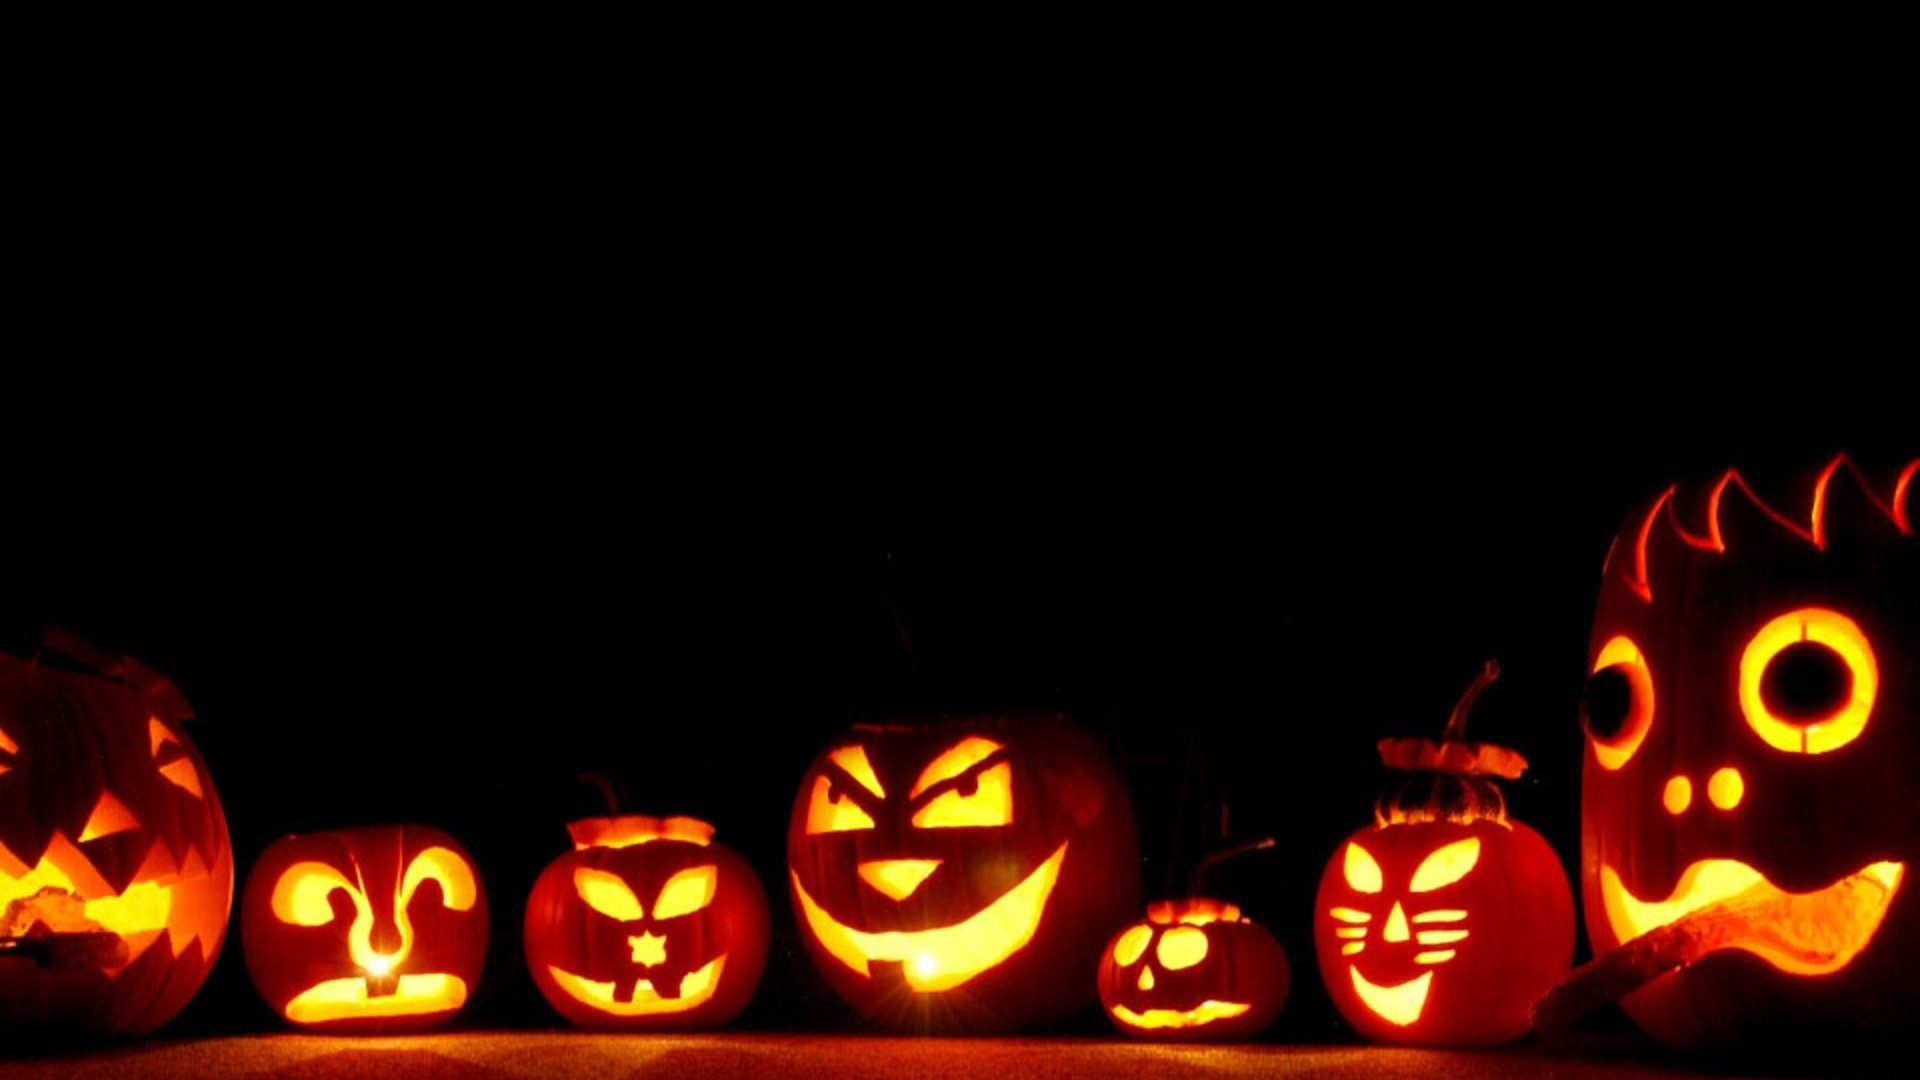 1920x1080 ... Hd Halloween Desktop Backgrounds WallpaperSafari